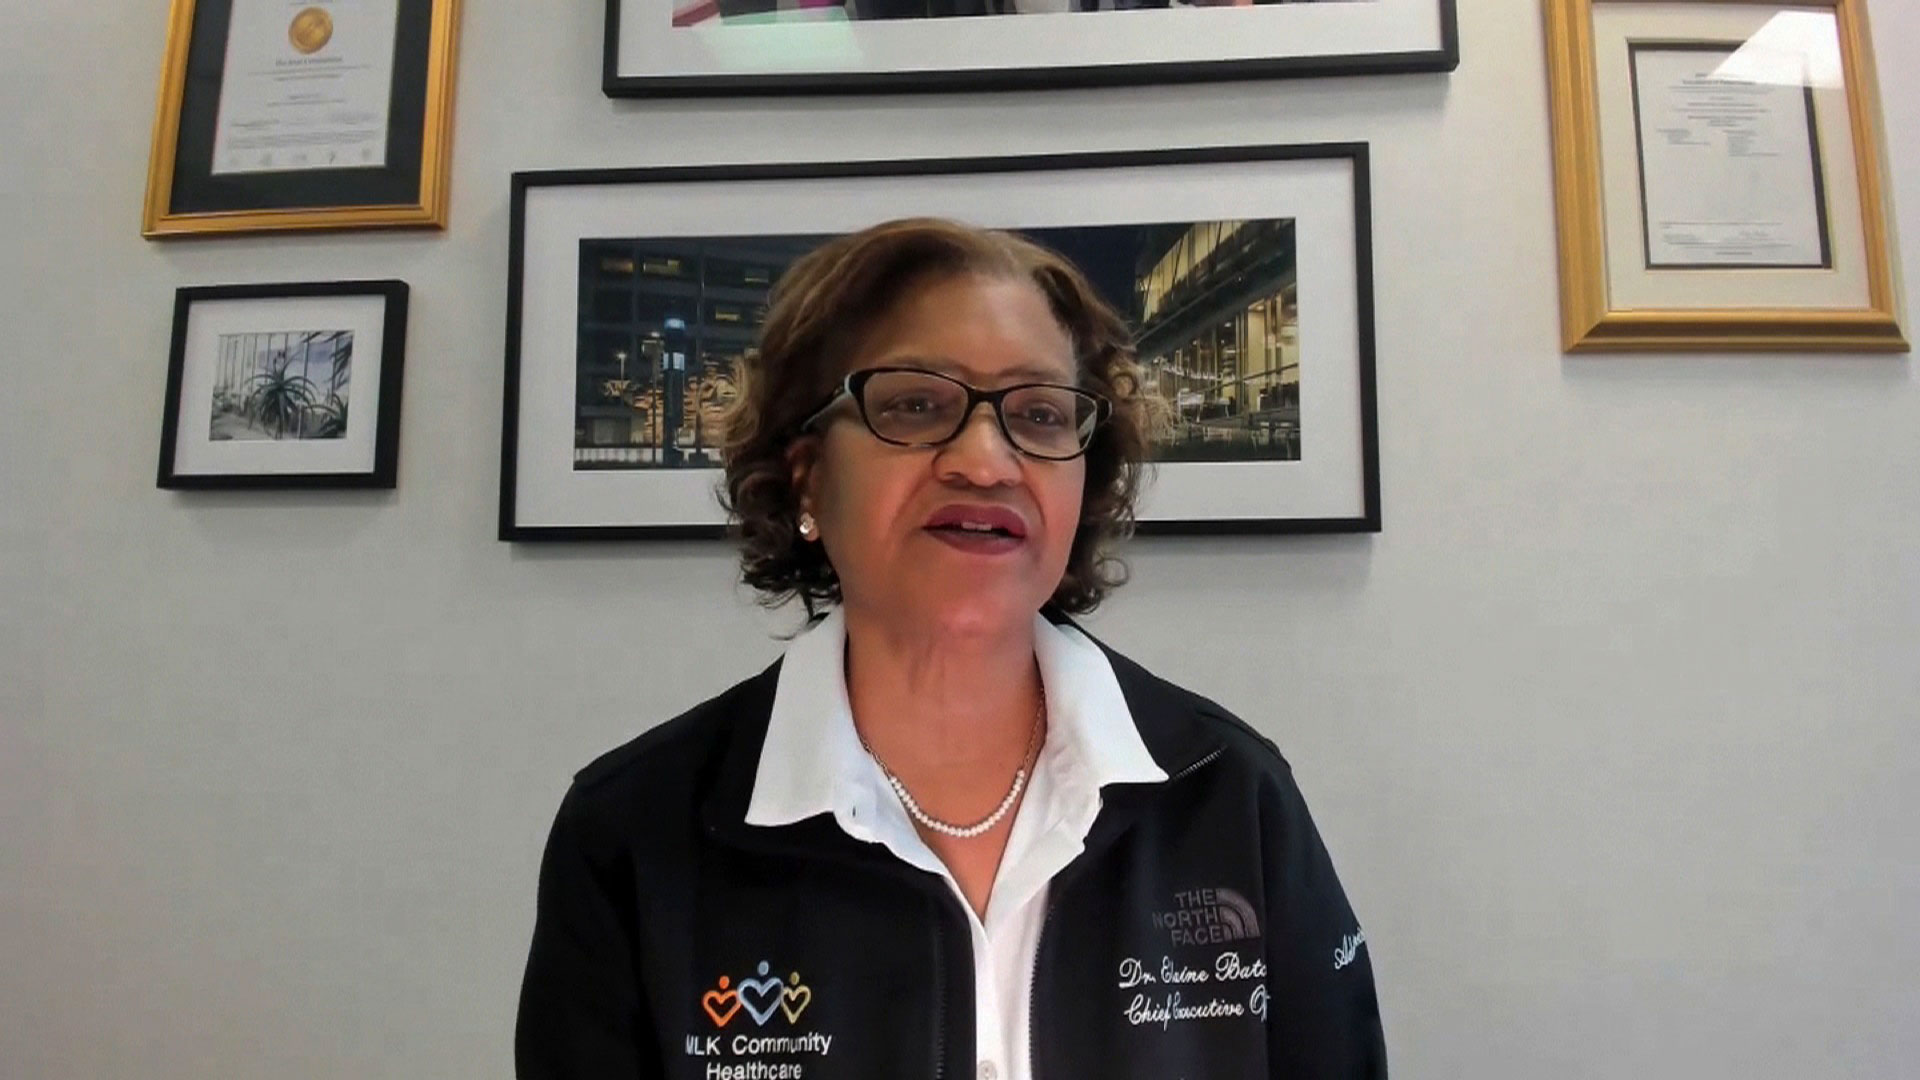 Dr. Elaine Batchlor, CEO of Martin Luther King Jr. Community Hospital in Los Angeles, speaks with CNN on December 28.